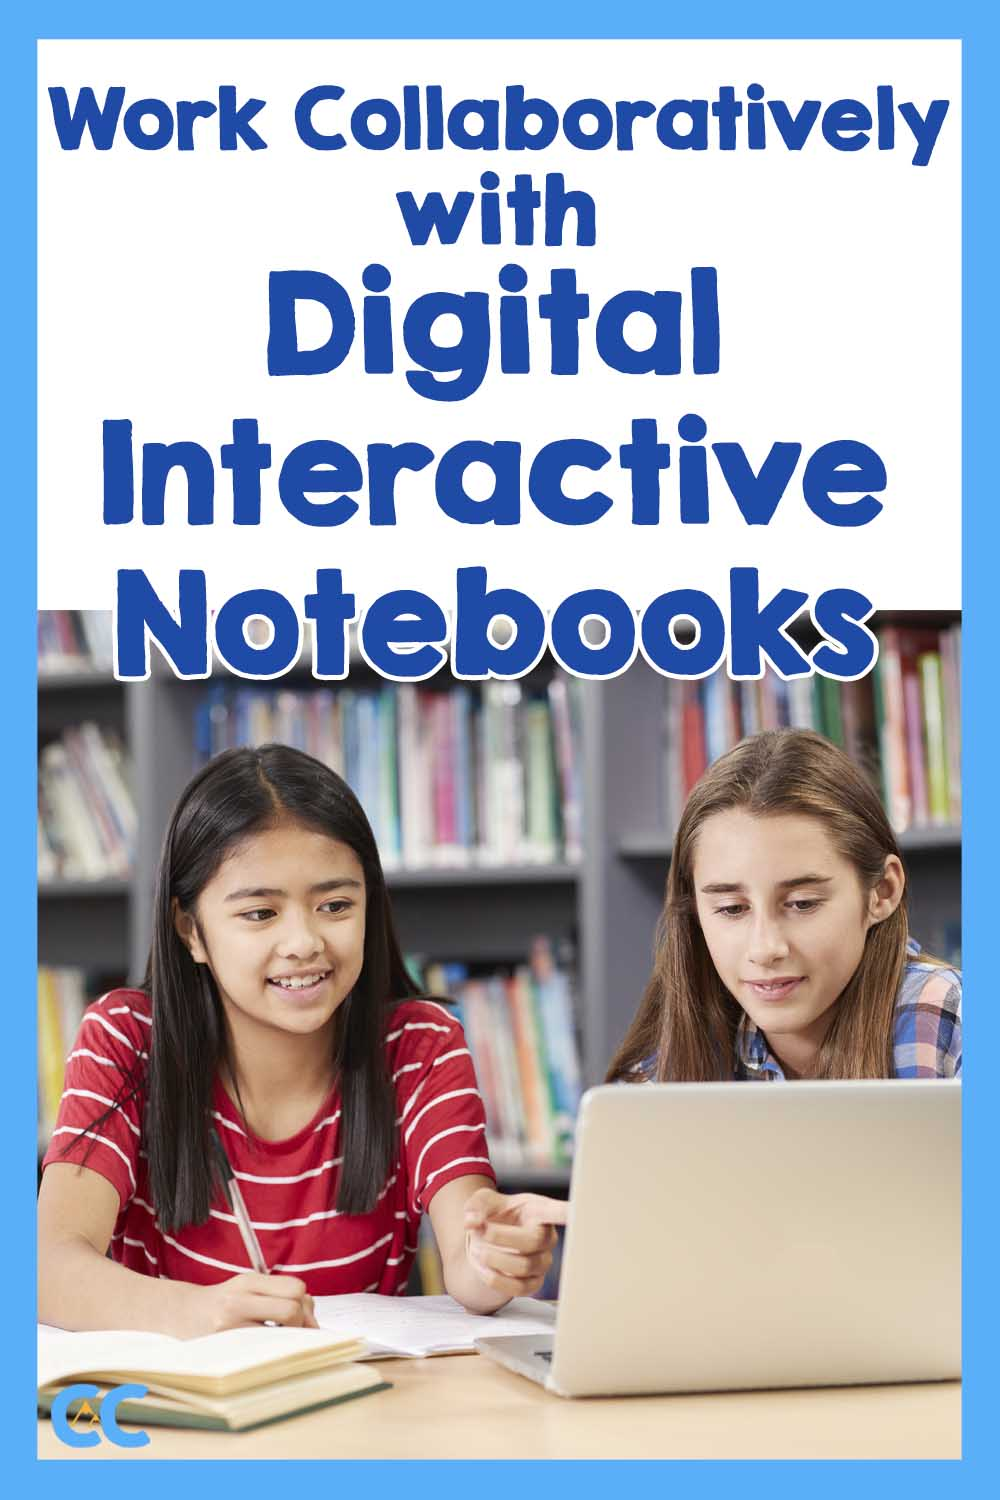 Work Collaboratively with Digital Interactive Notebooks shows two girls working together around one computer.